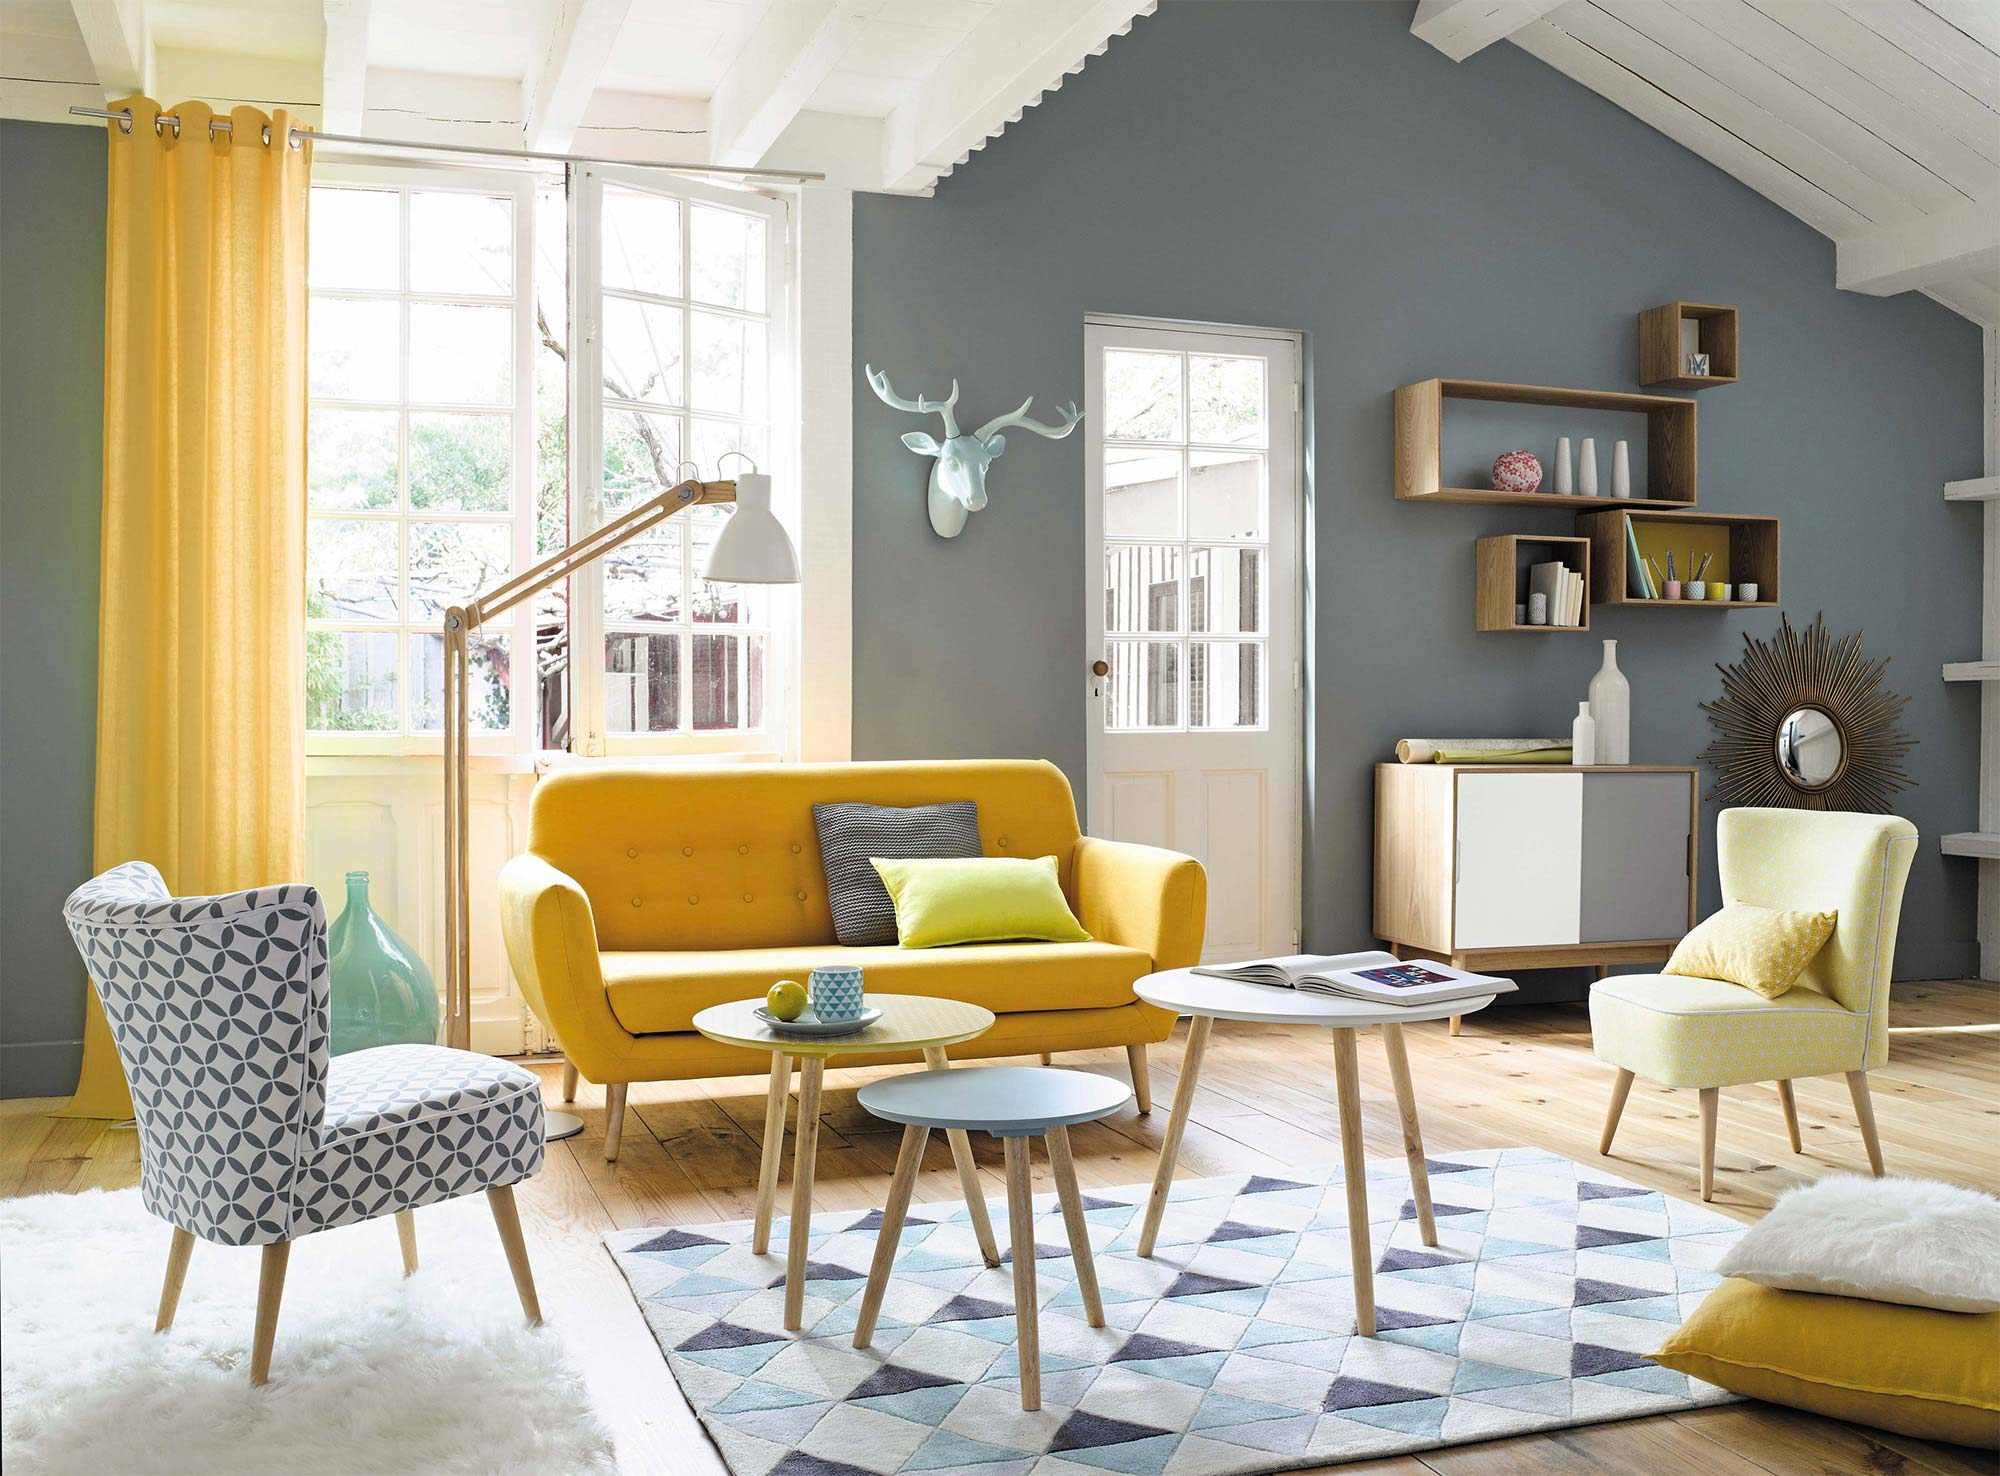 Canap scandinave jaune for Decoration maison tendance 2018